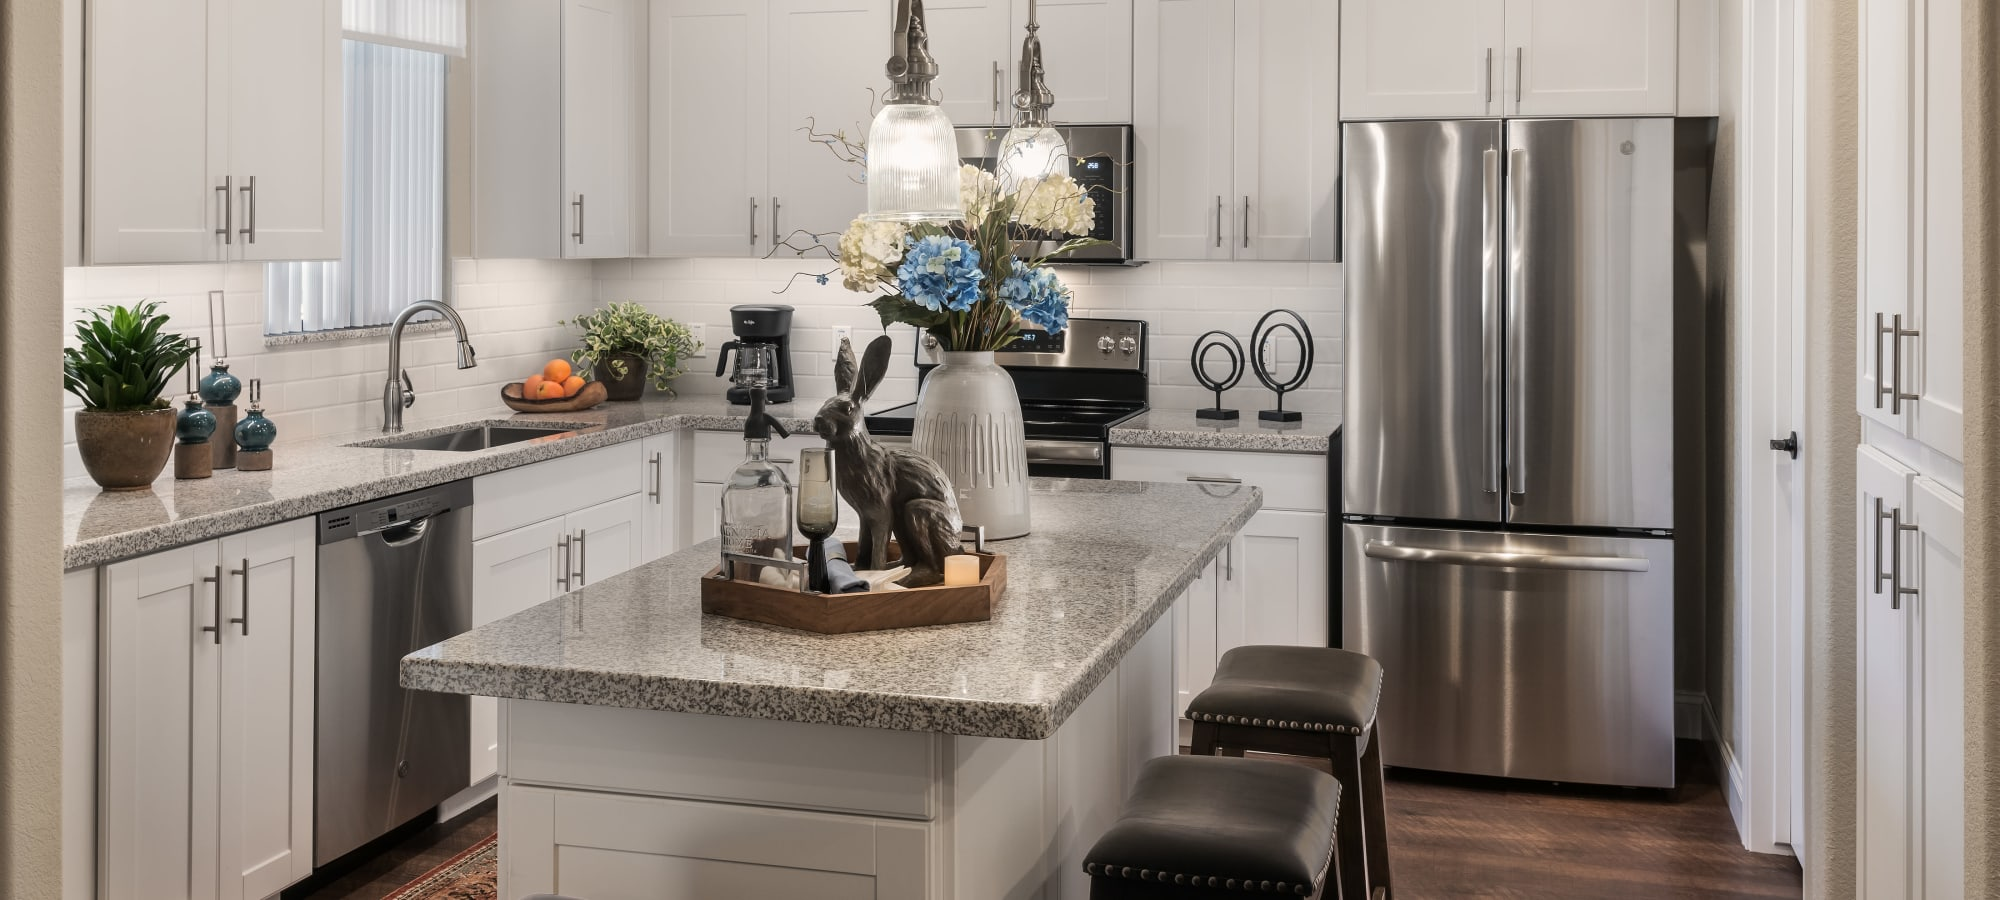 Modern kitchen with granite countertops and stainless-steel appliances in model home at San Villante in Mesa, Arizona